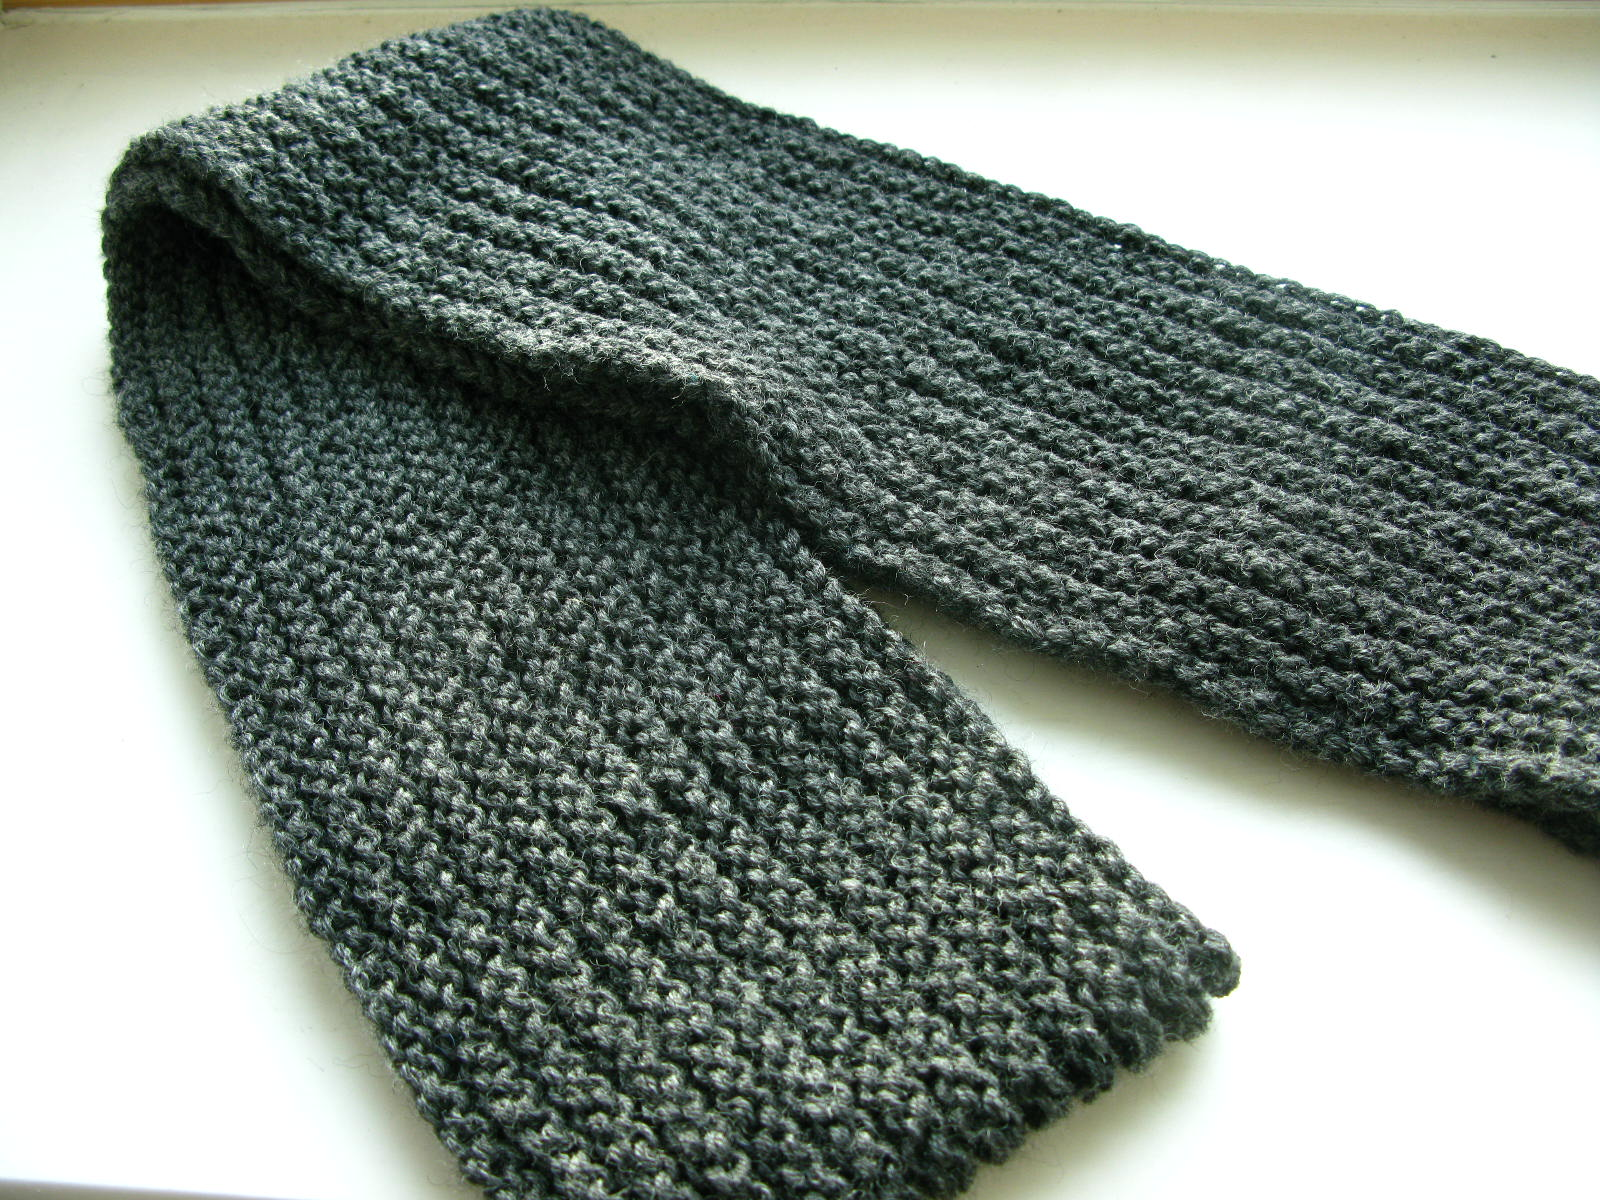 littletheorem: Ingram Scarf